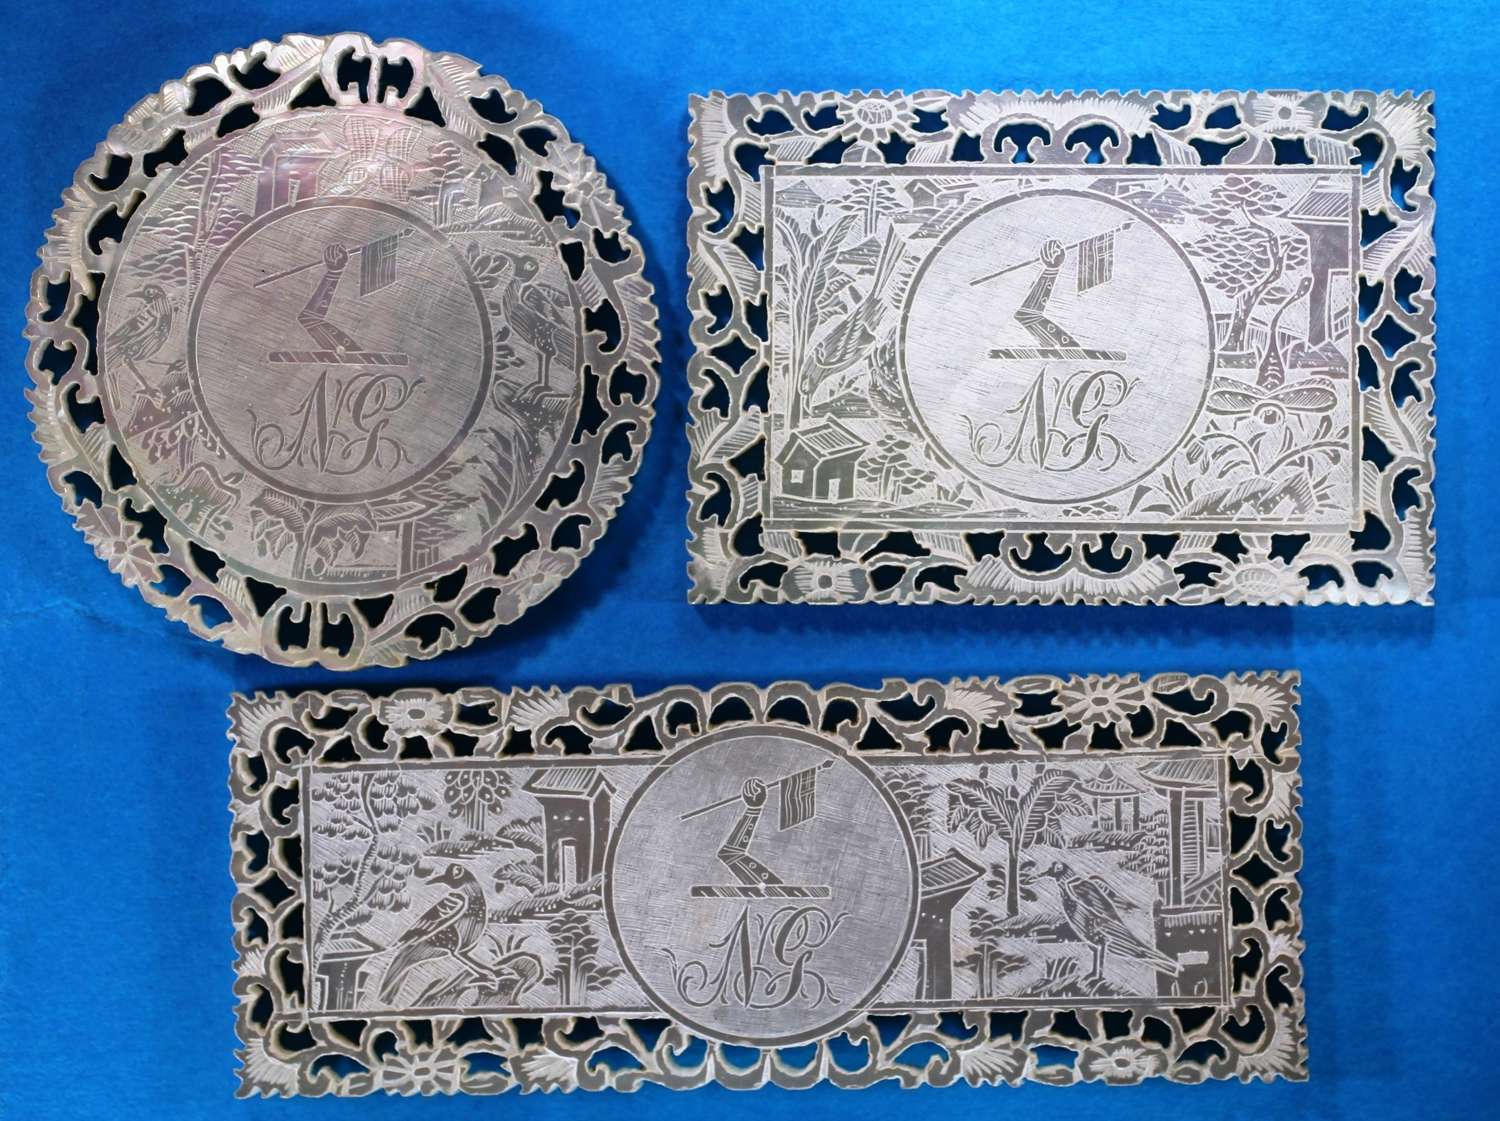 Set of three for GOULD boatowner and captain of the East India Company